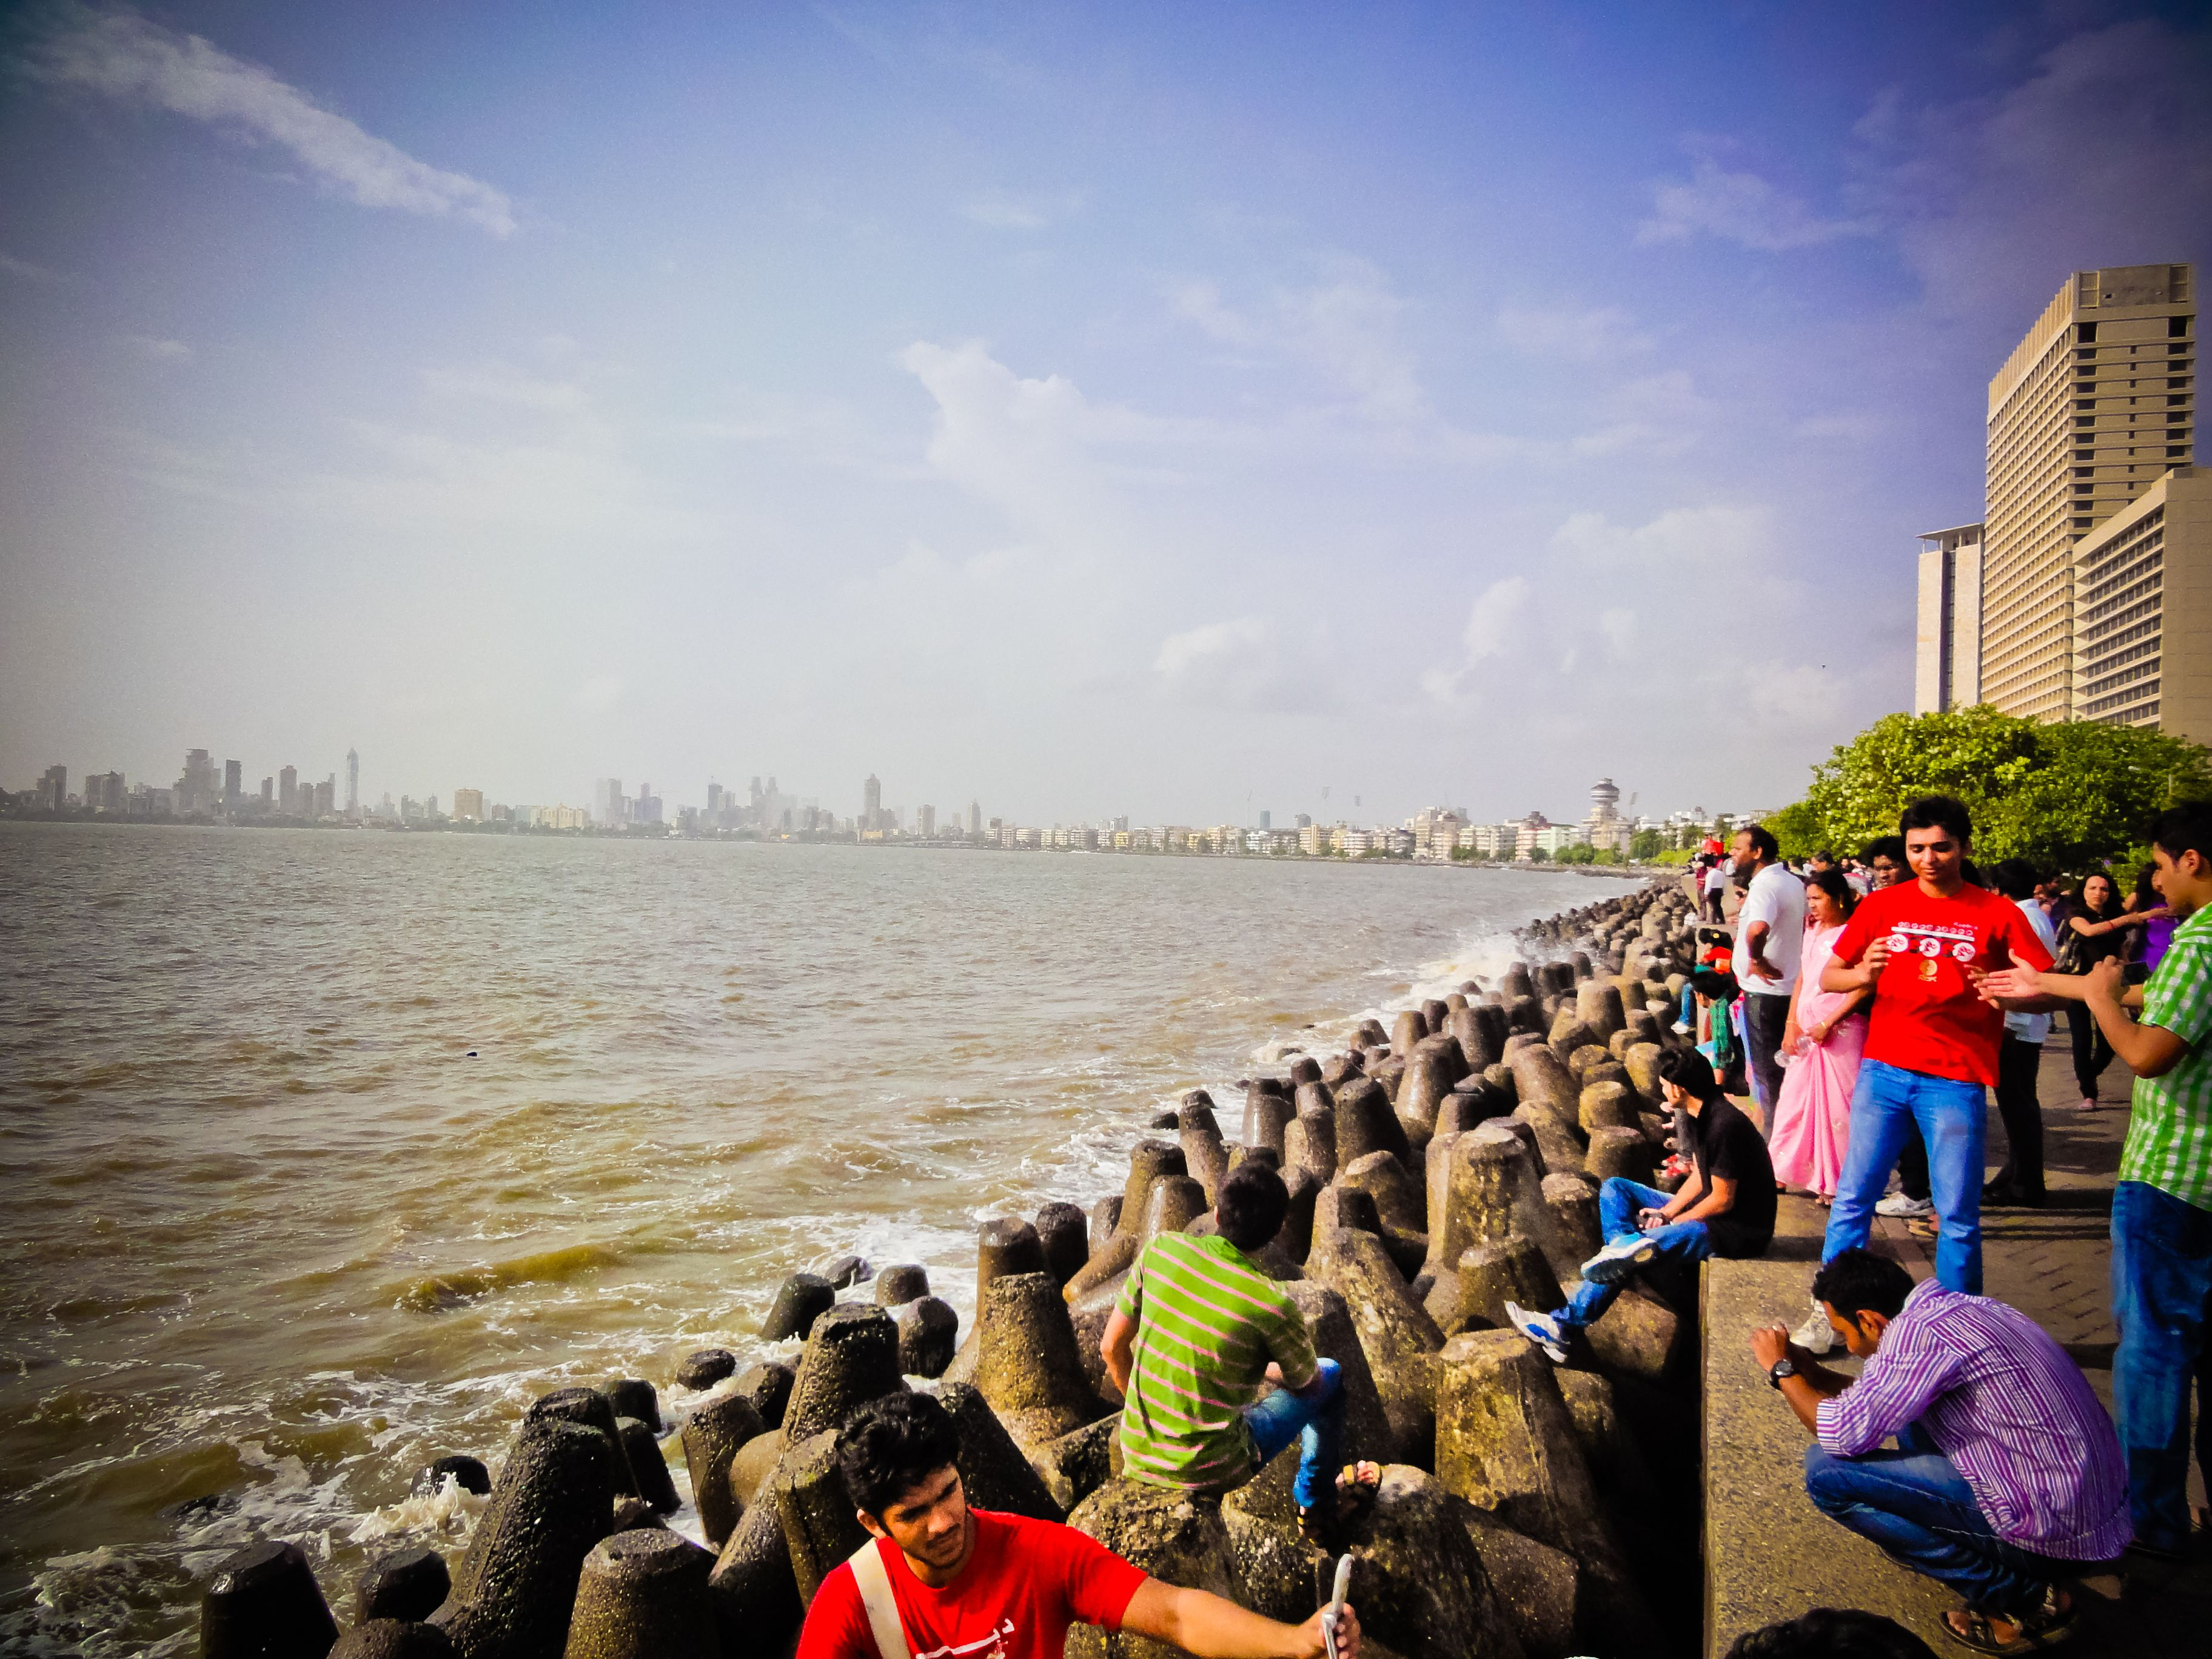 Holiday on the beaches in Mumbai wallpapers and image